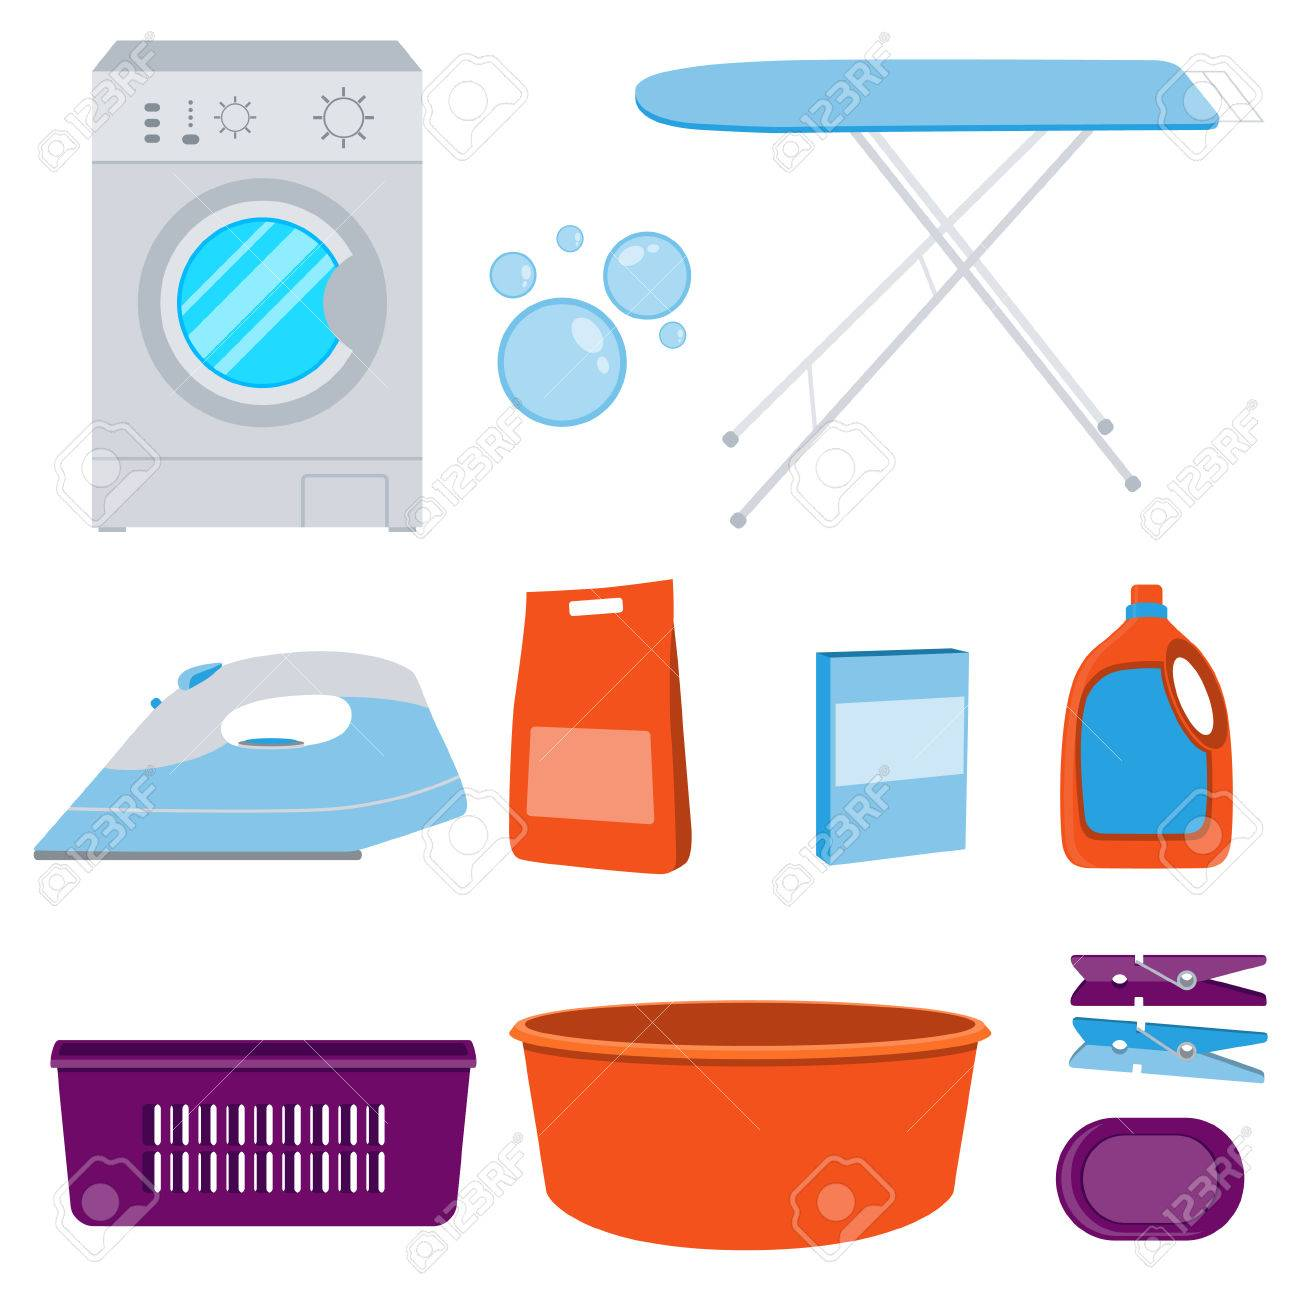 Laundry Detergent Clipart icons set laundry. washing machine and laundry detergent